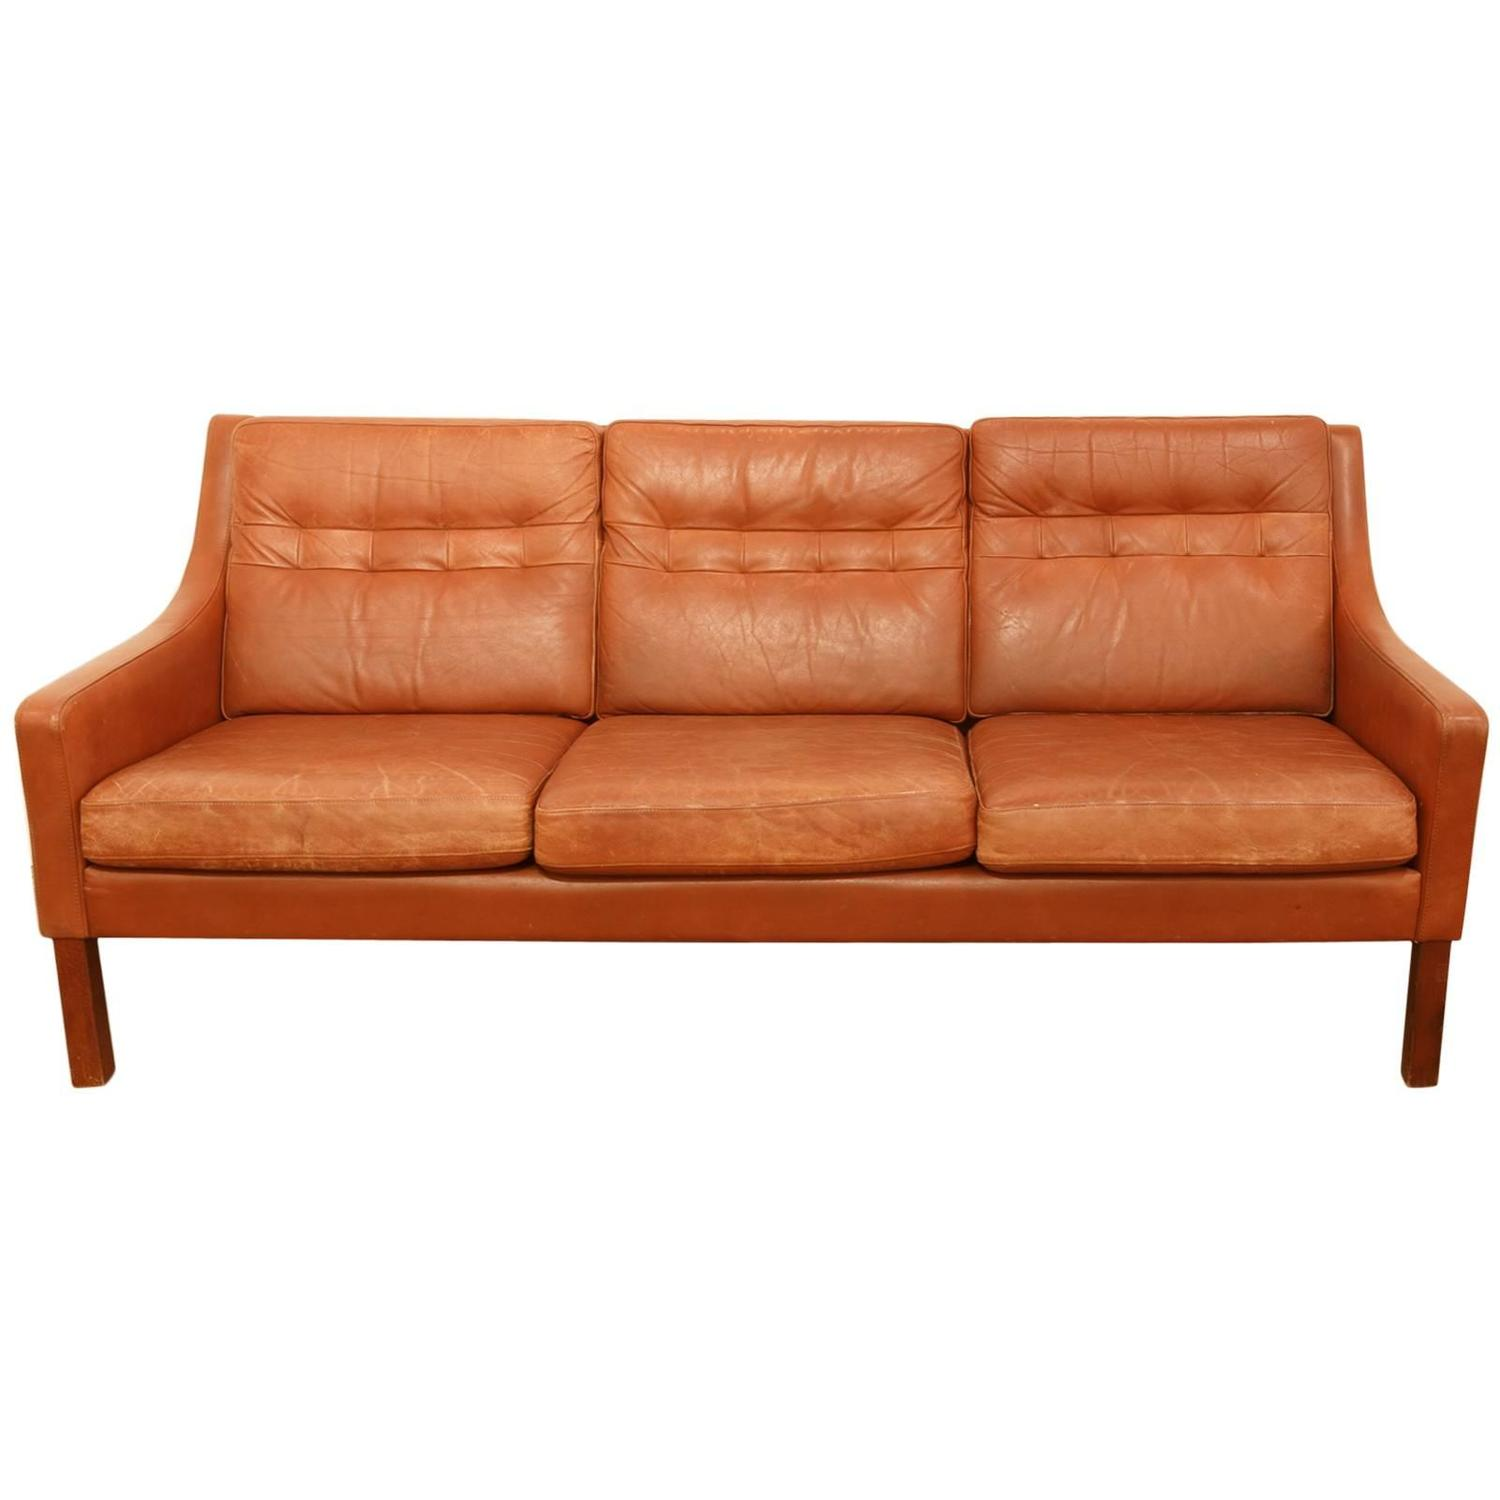 1960s cognac leather sofa after b rge mogensen 2213 at. Black Bedroom Furniture Sets. Home Design Ideas